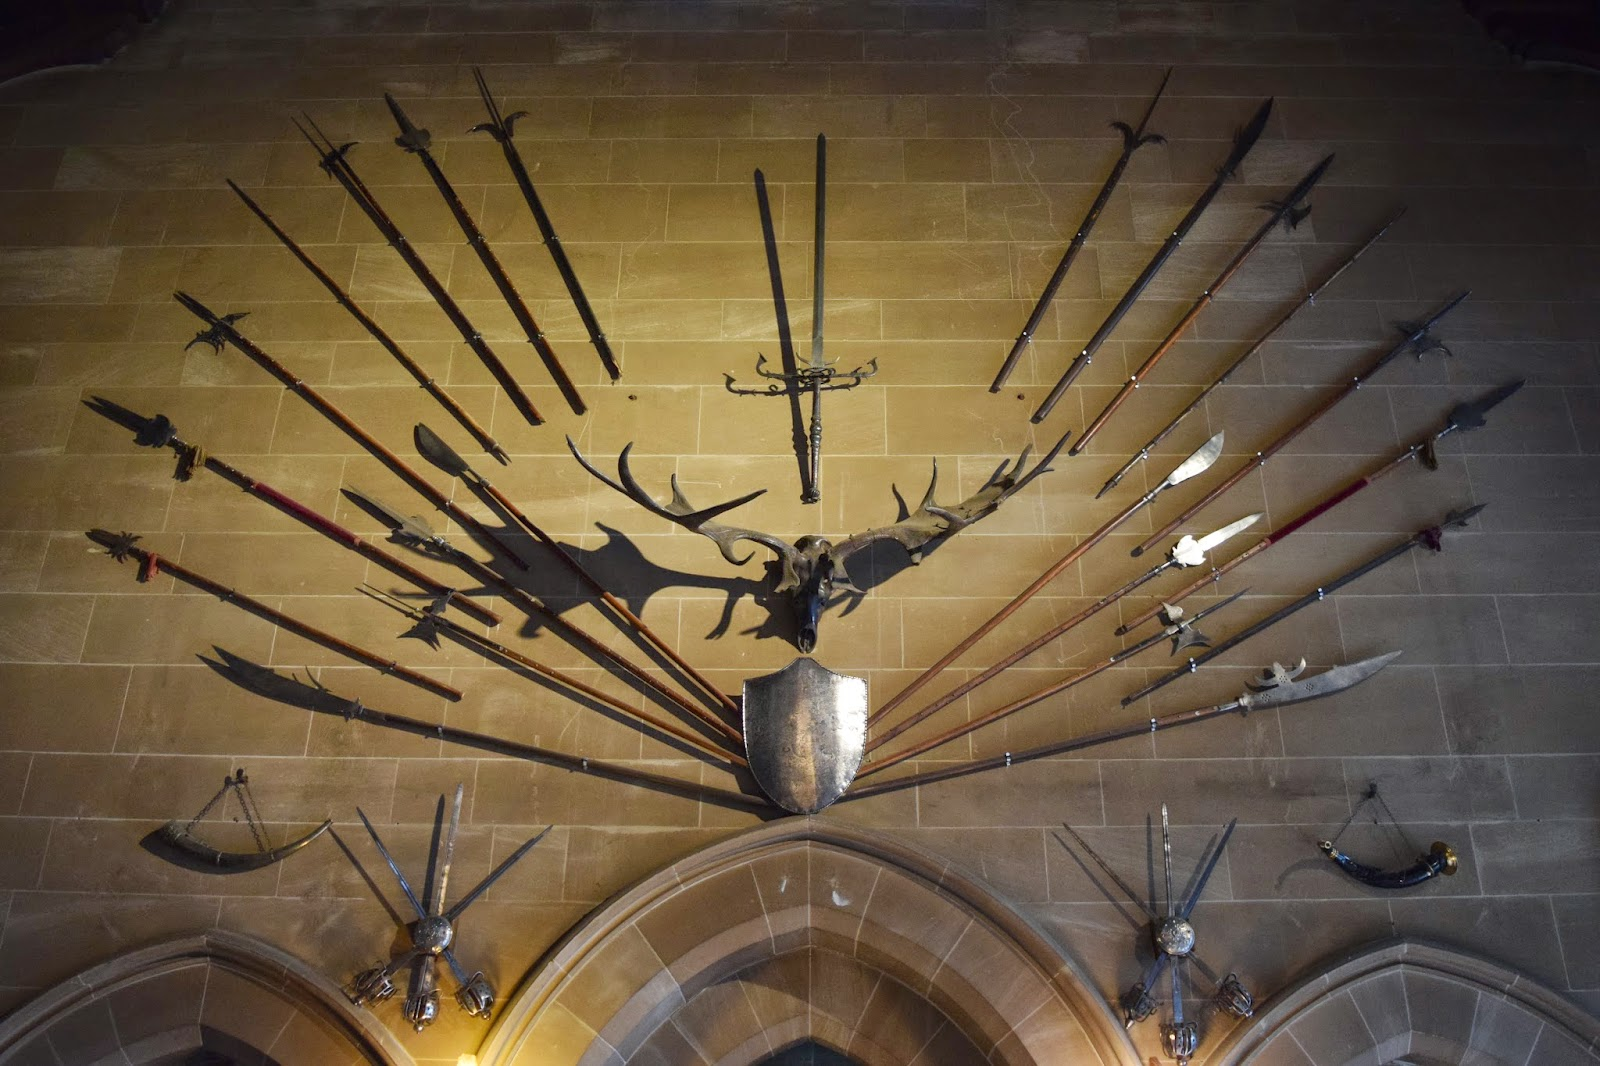 some of the weapons on display in the great hall at warwick castle